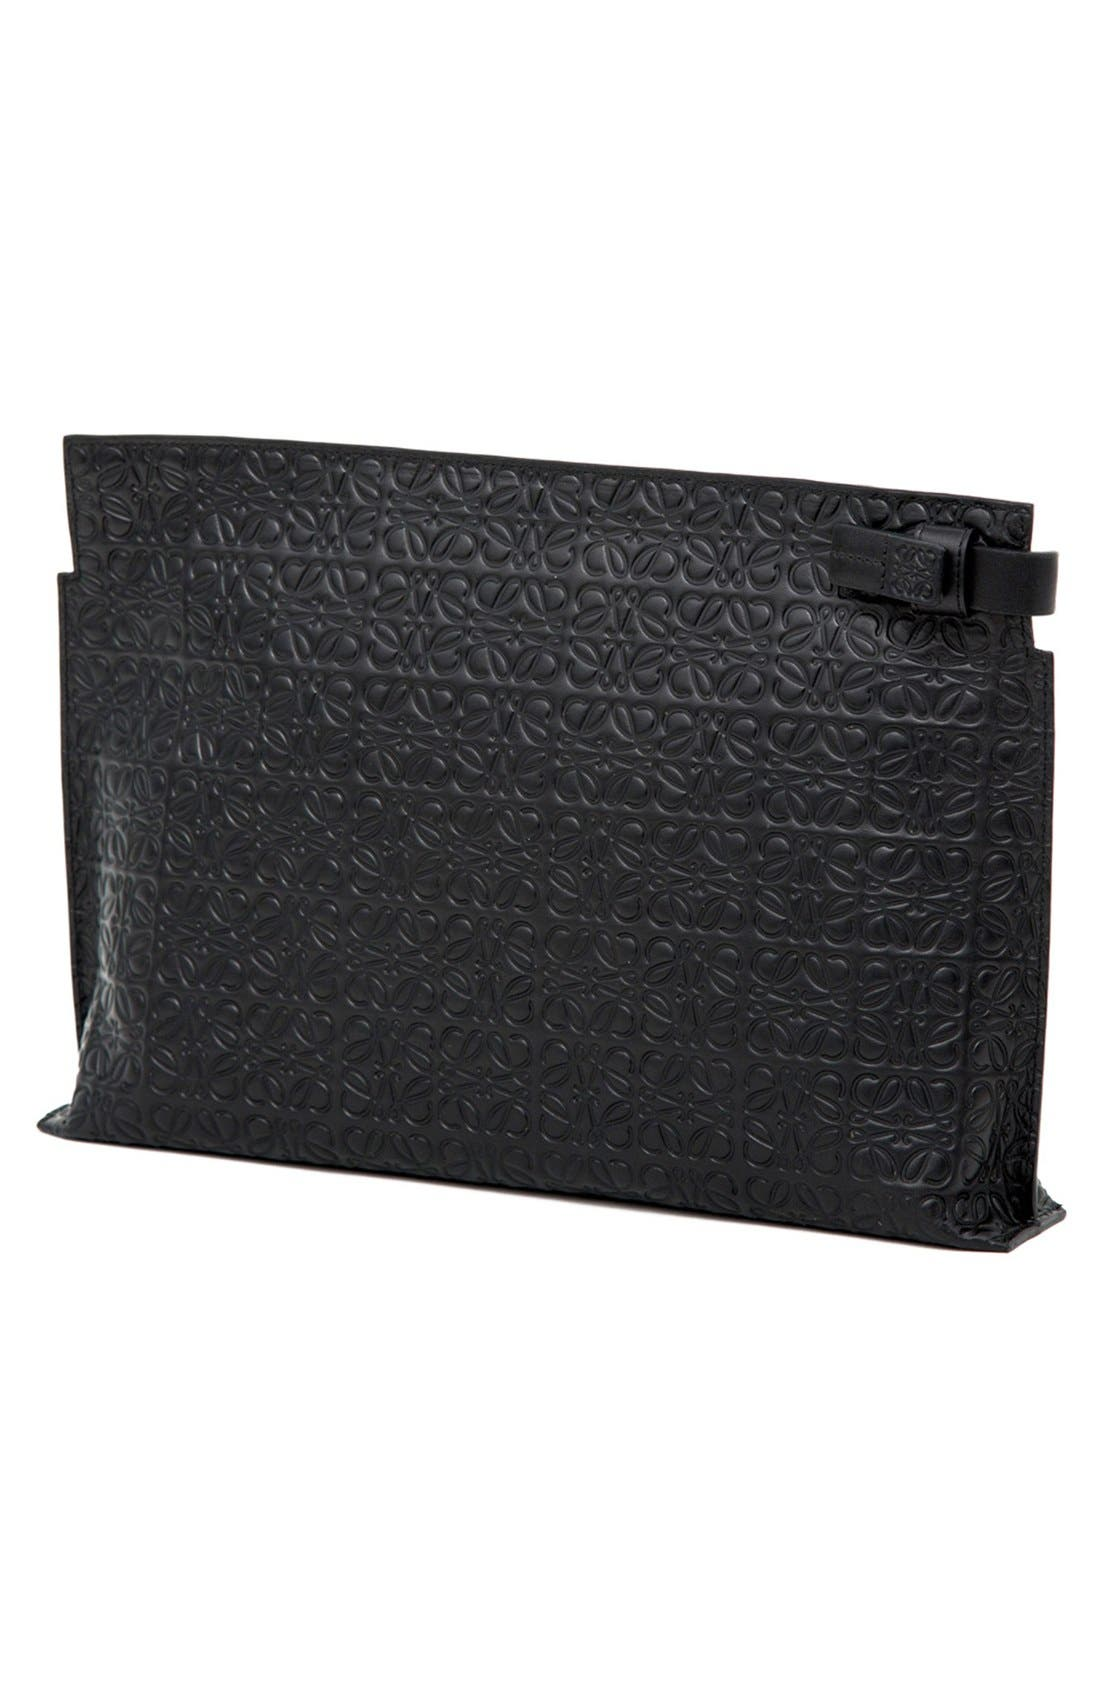 Large Logo Embossed Calfskin Leather Pouch,                             Alternate thumbnail 2, color,                             Black